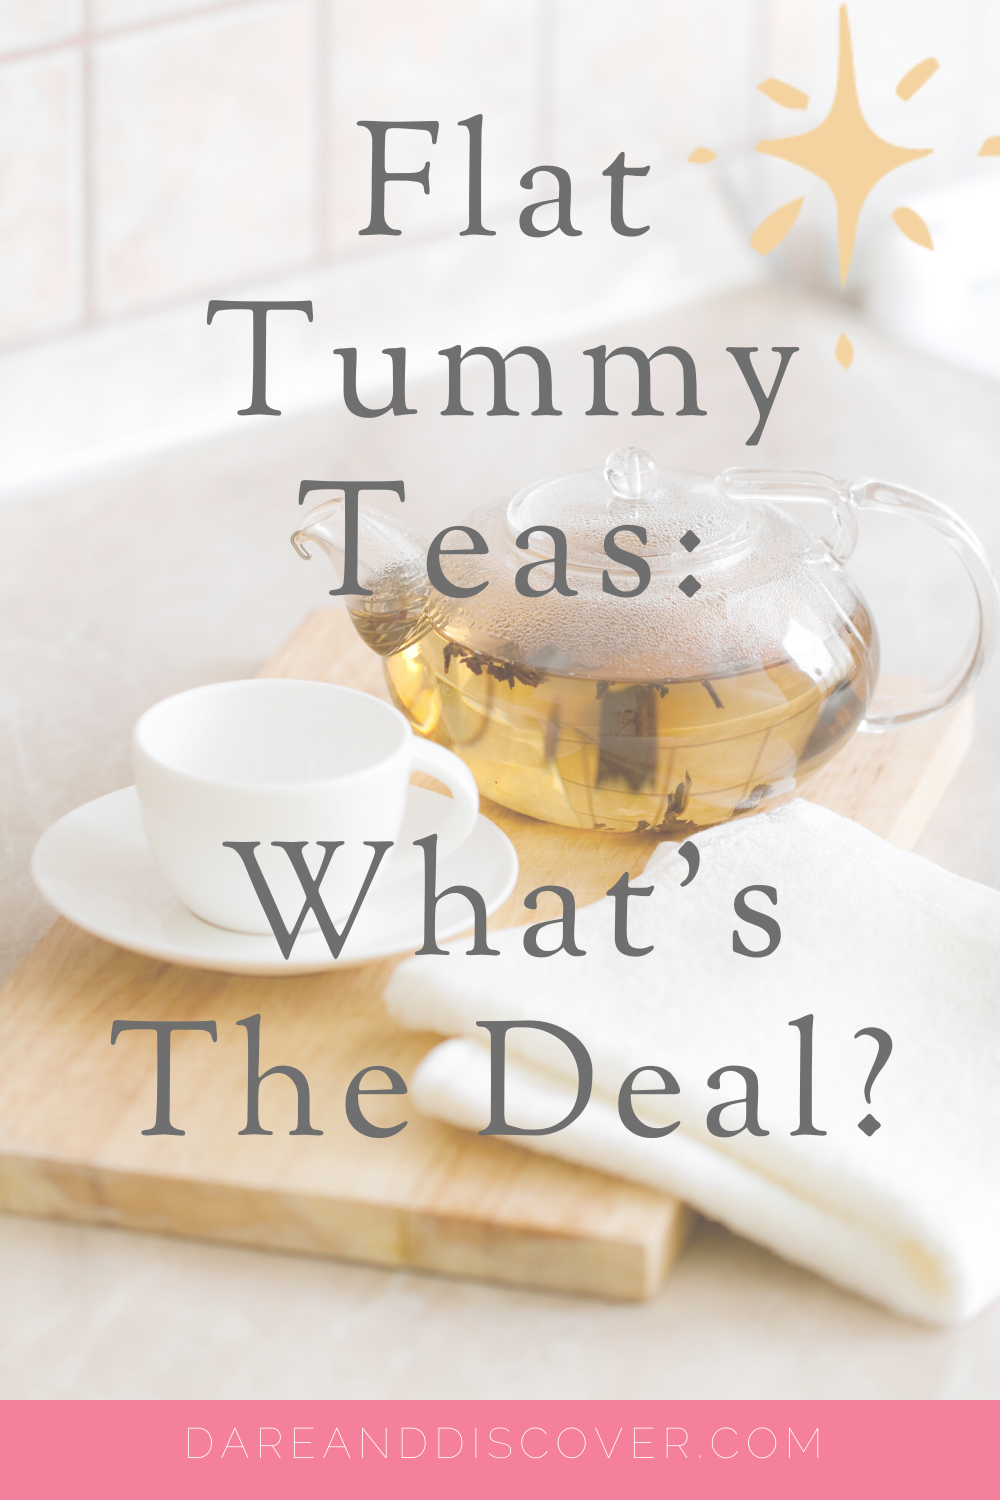 Flat tummy teas and drinks seem to be all over social media, with influencers jumping on the band wagon. But, can flat tummy teas really be the answer to achieving the bodies we want? Or, are flat tummy teas and drinks just one big scam?! I searched the internet to find out, and also checked out some other products such as waist trainers and appetite suppressing lollipops | Flat Tummy Teas | Flat Tummy Drinks | Appetite Suppressant Lollipops | #FlatTummy #FatLoss #FlatTummyTea